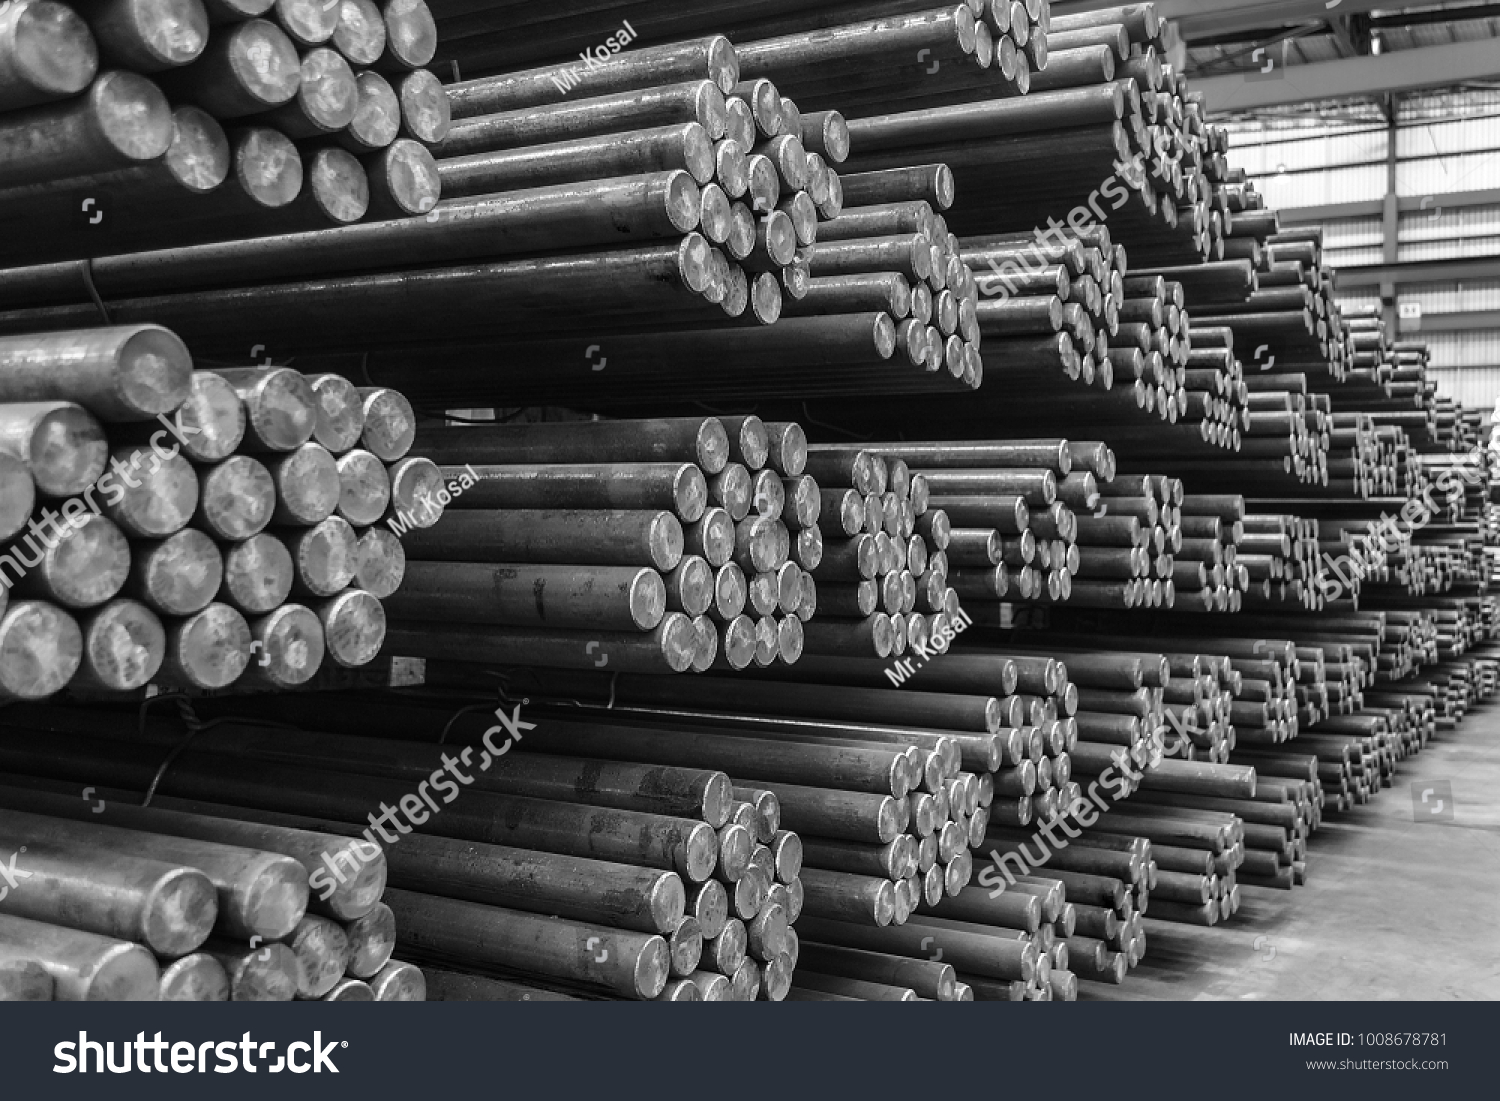 Rows of Steel Round Bar storage and stacking in the warehouse for industrial construction. Black and white with Shallow focus. #1008678781